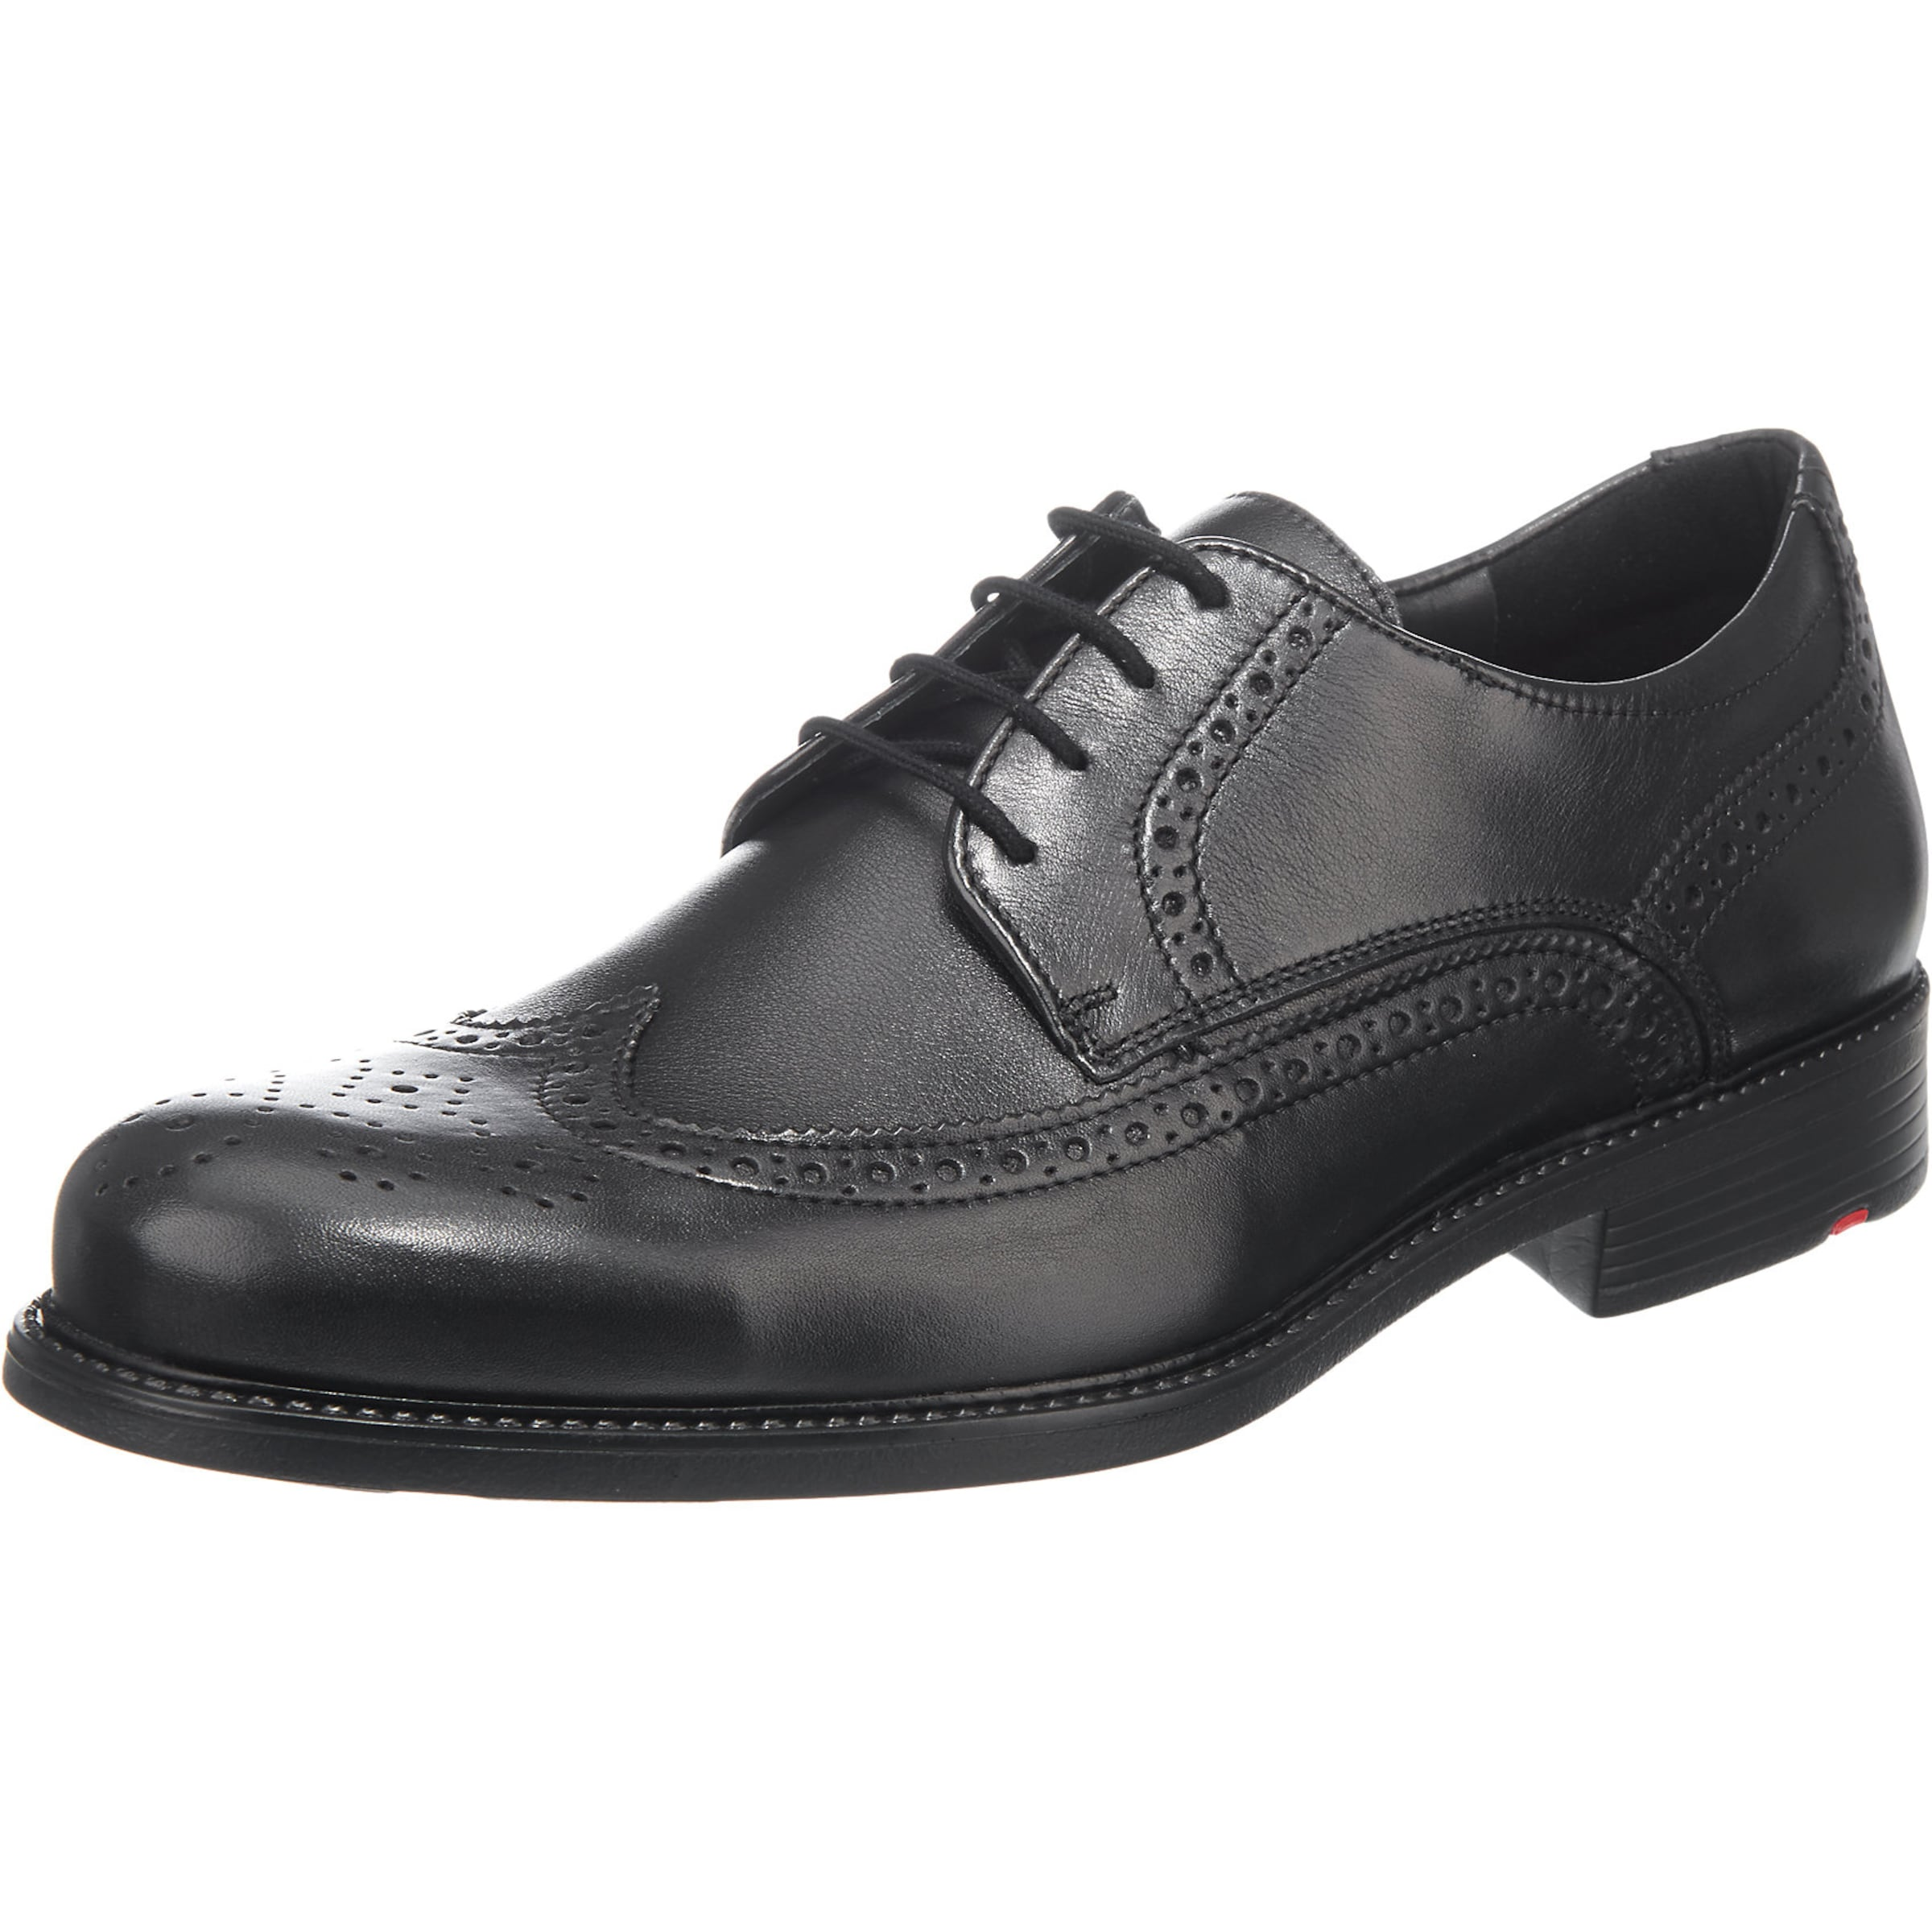 LLOYD | Tampico Business Schuhe